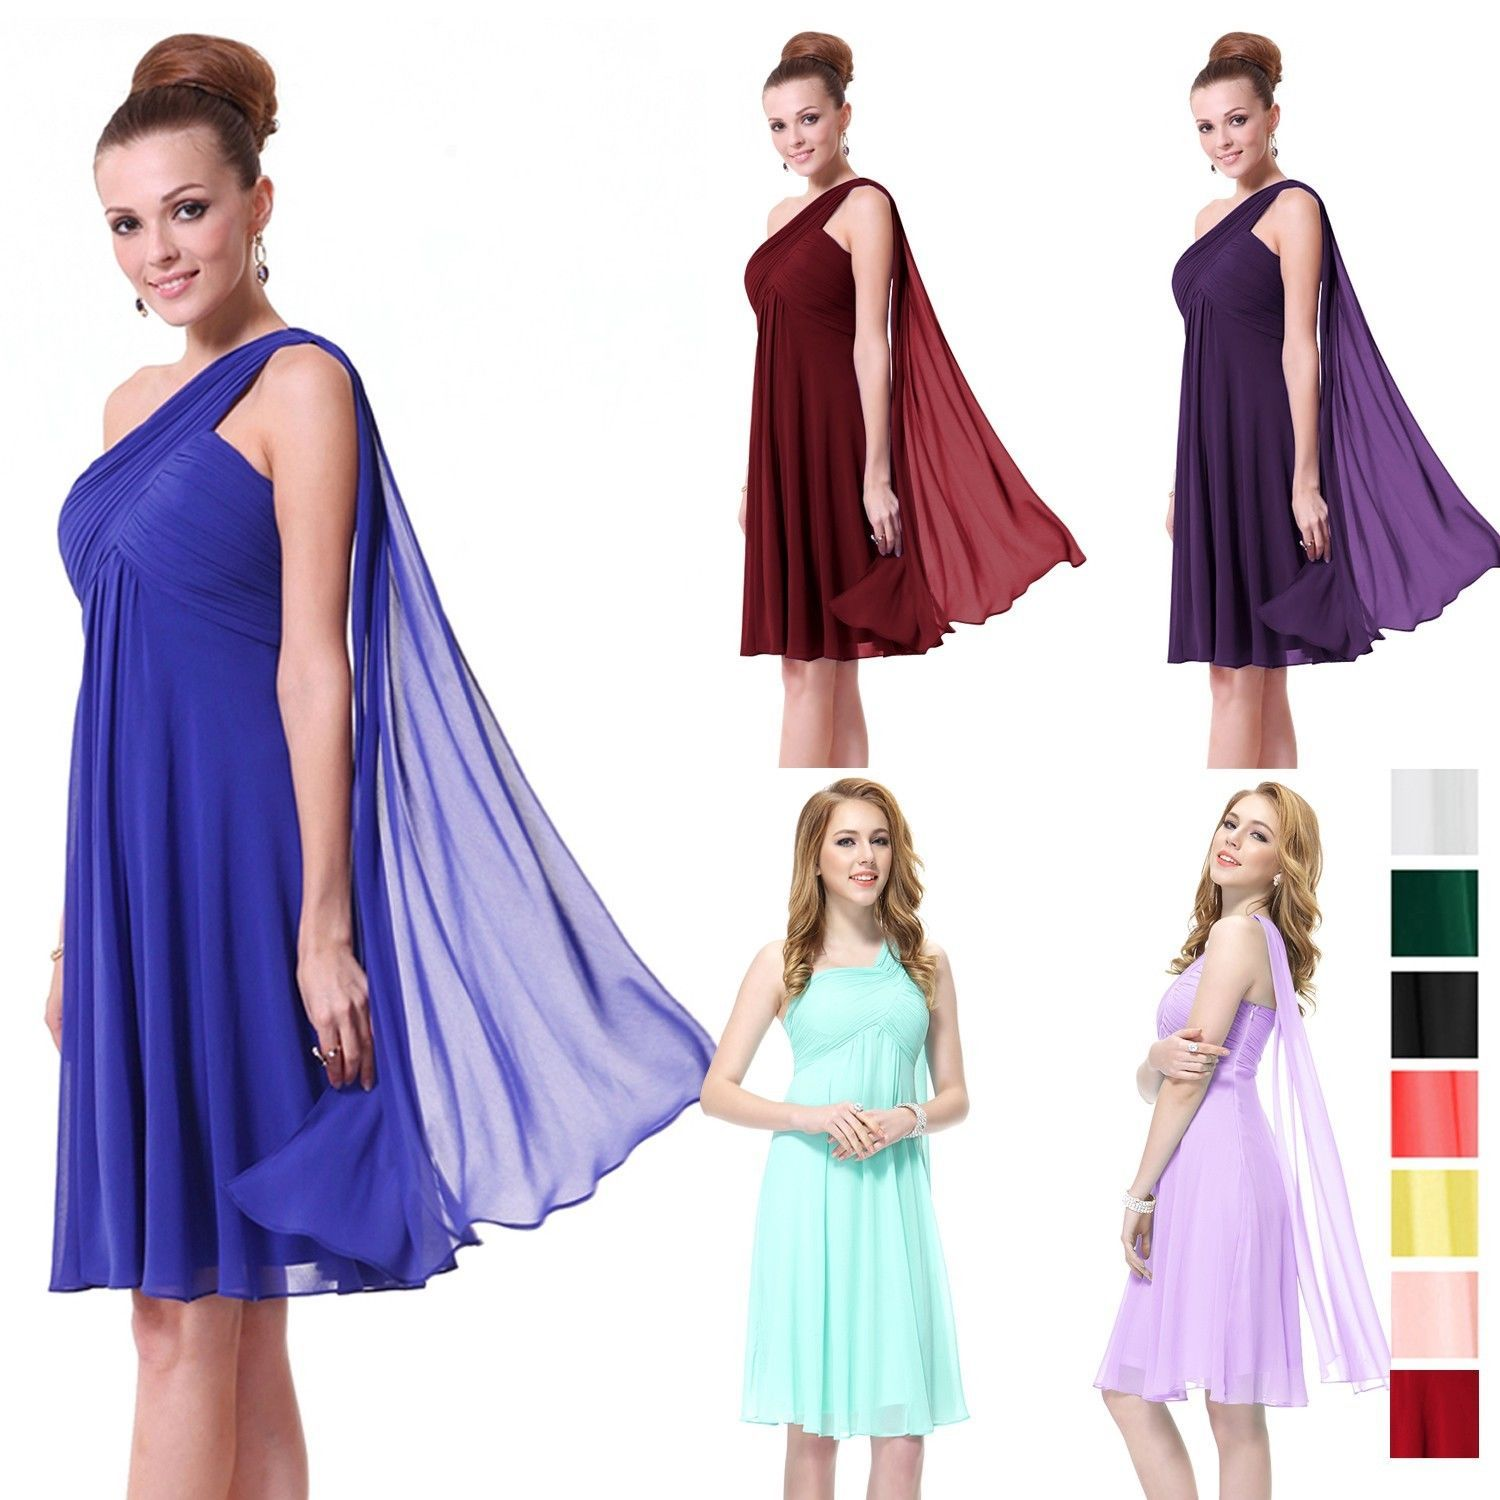 Sexy Mini Women Bridesmaid Dress Evening Cocktail Party Prom Ball Gown new 03537  #fashion style, #Ladies Wear, #clothing, #Dress